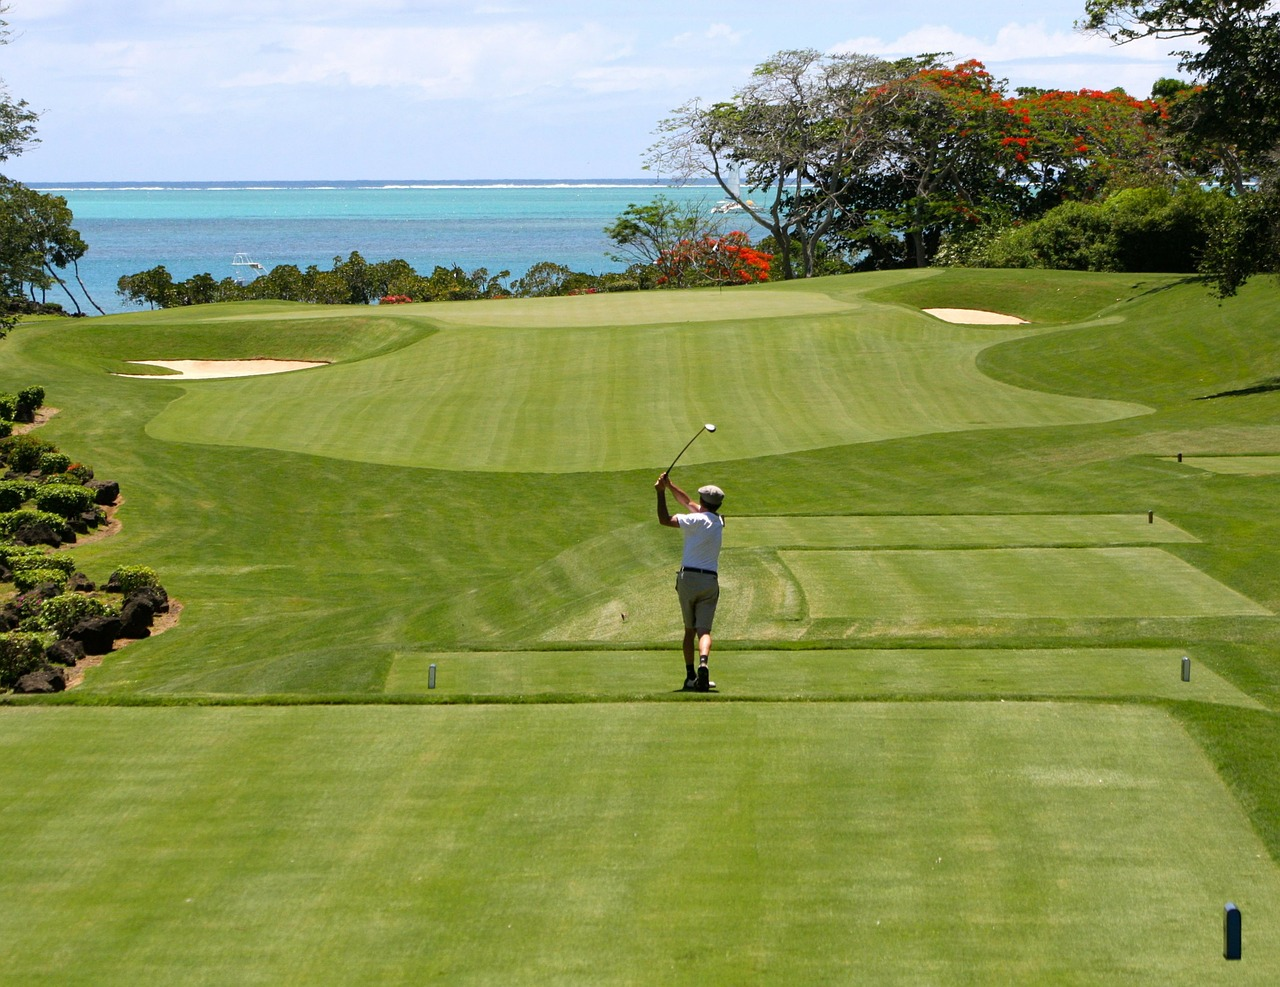 Golf de la République dominicaine